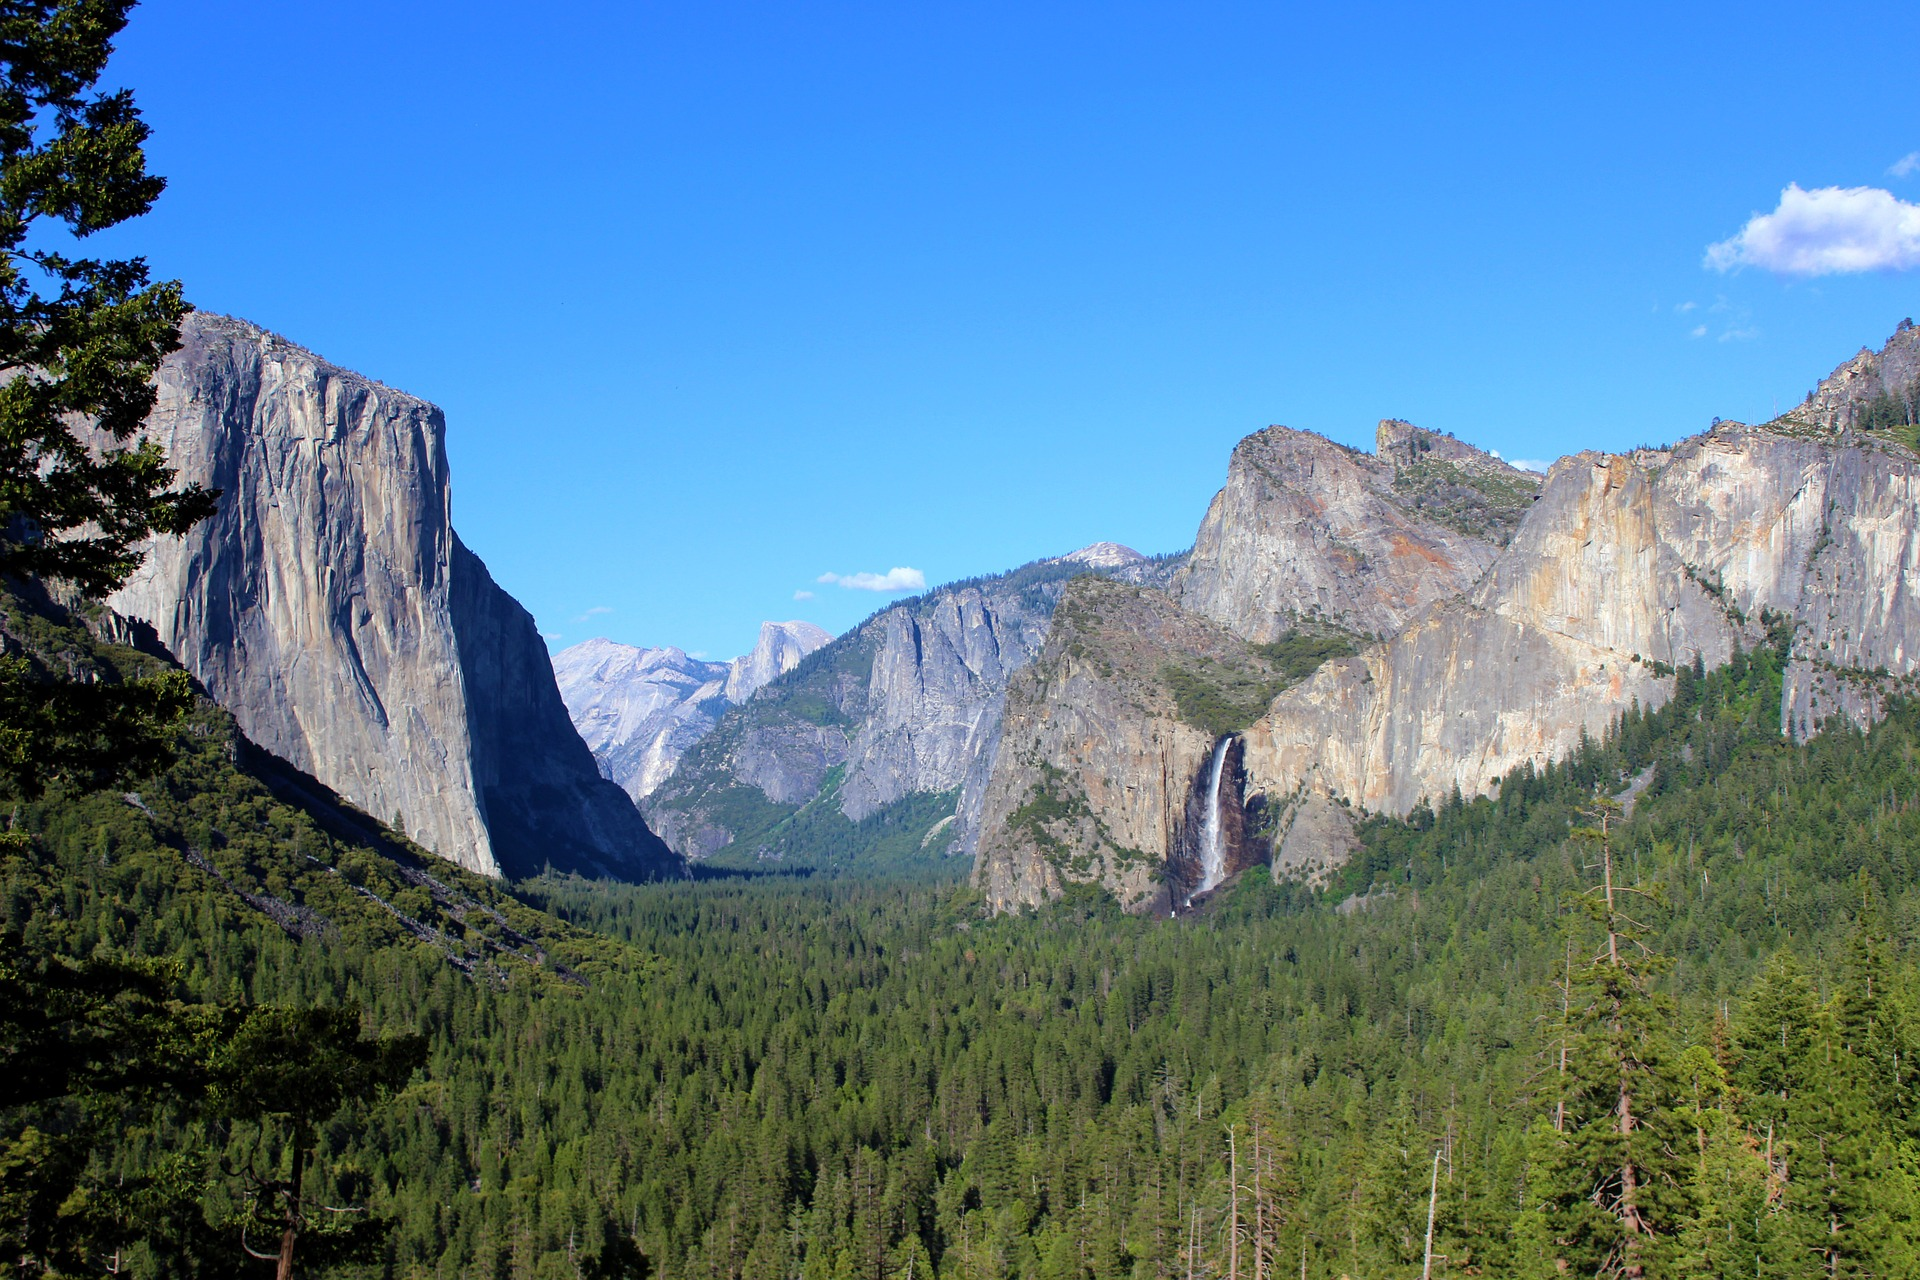 Tunnel View, scenic spot in Yosemite National Park in California, United States